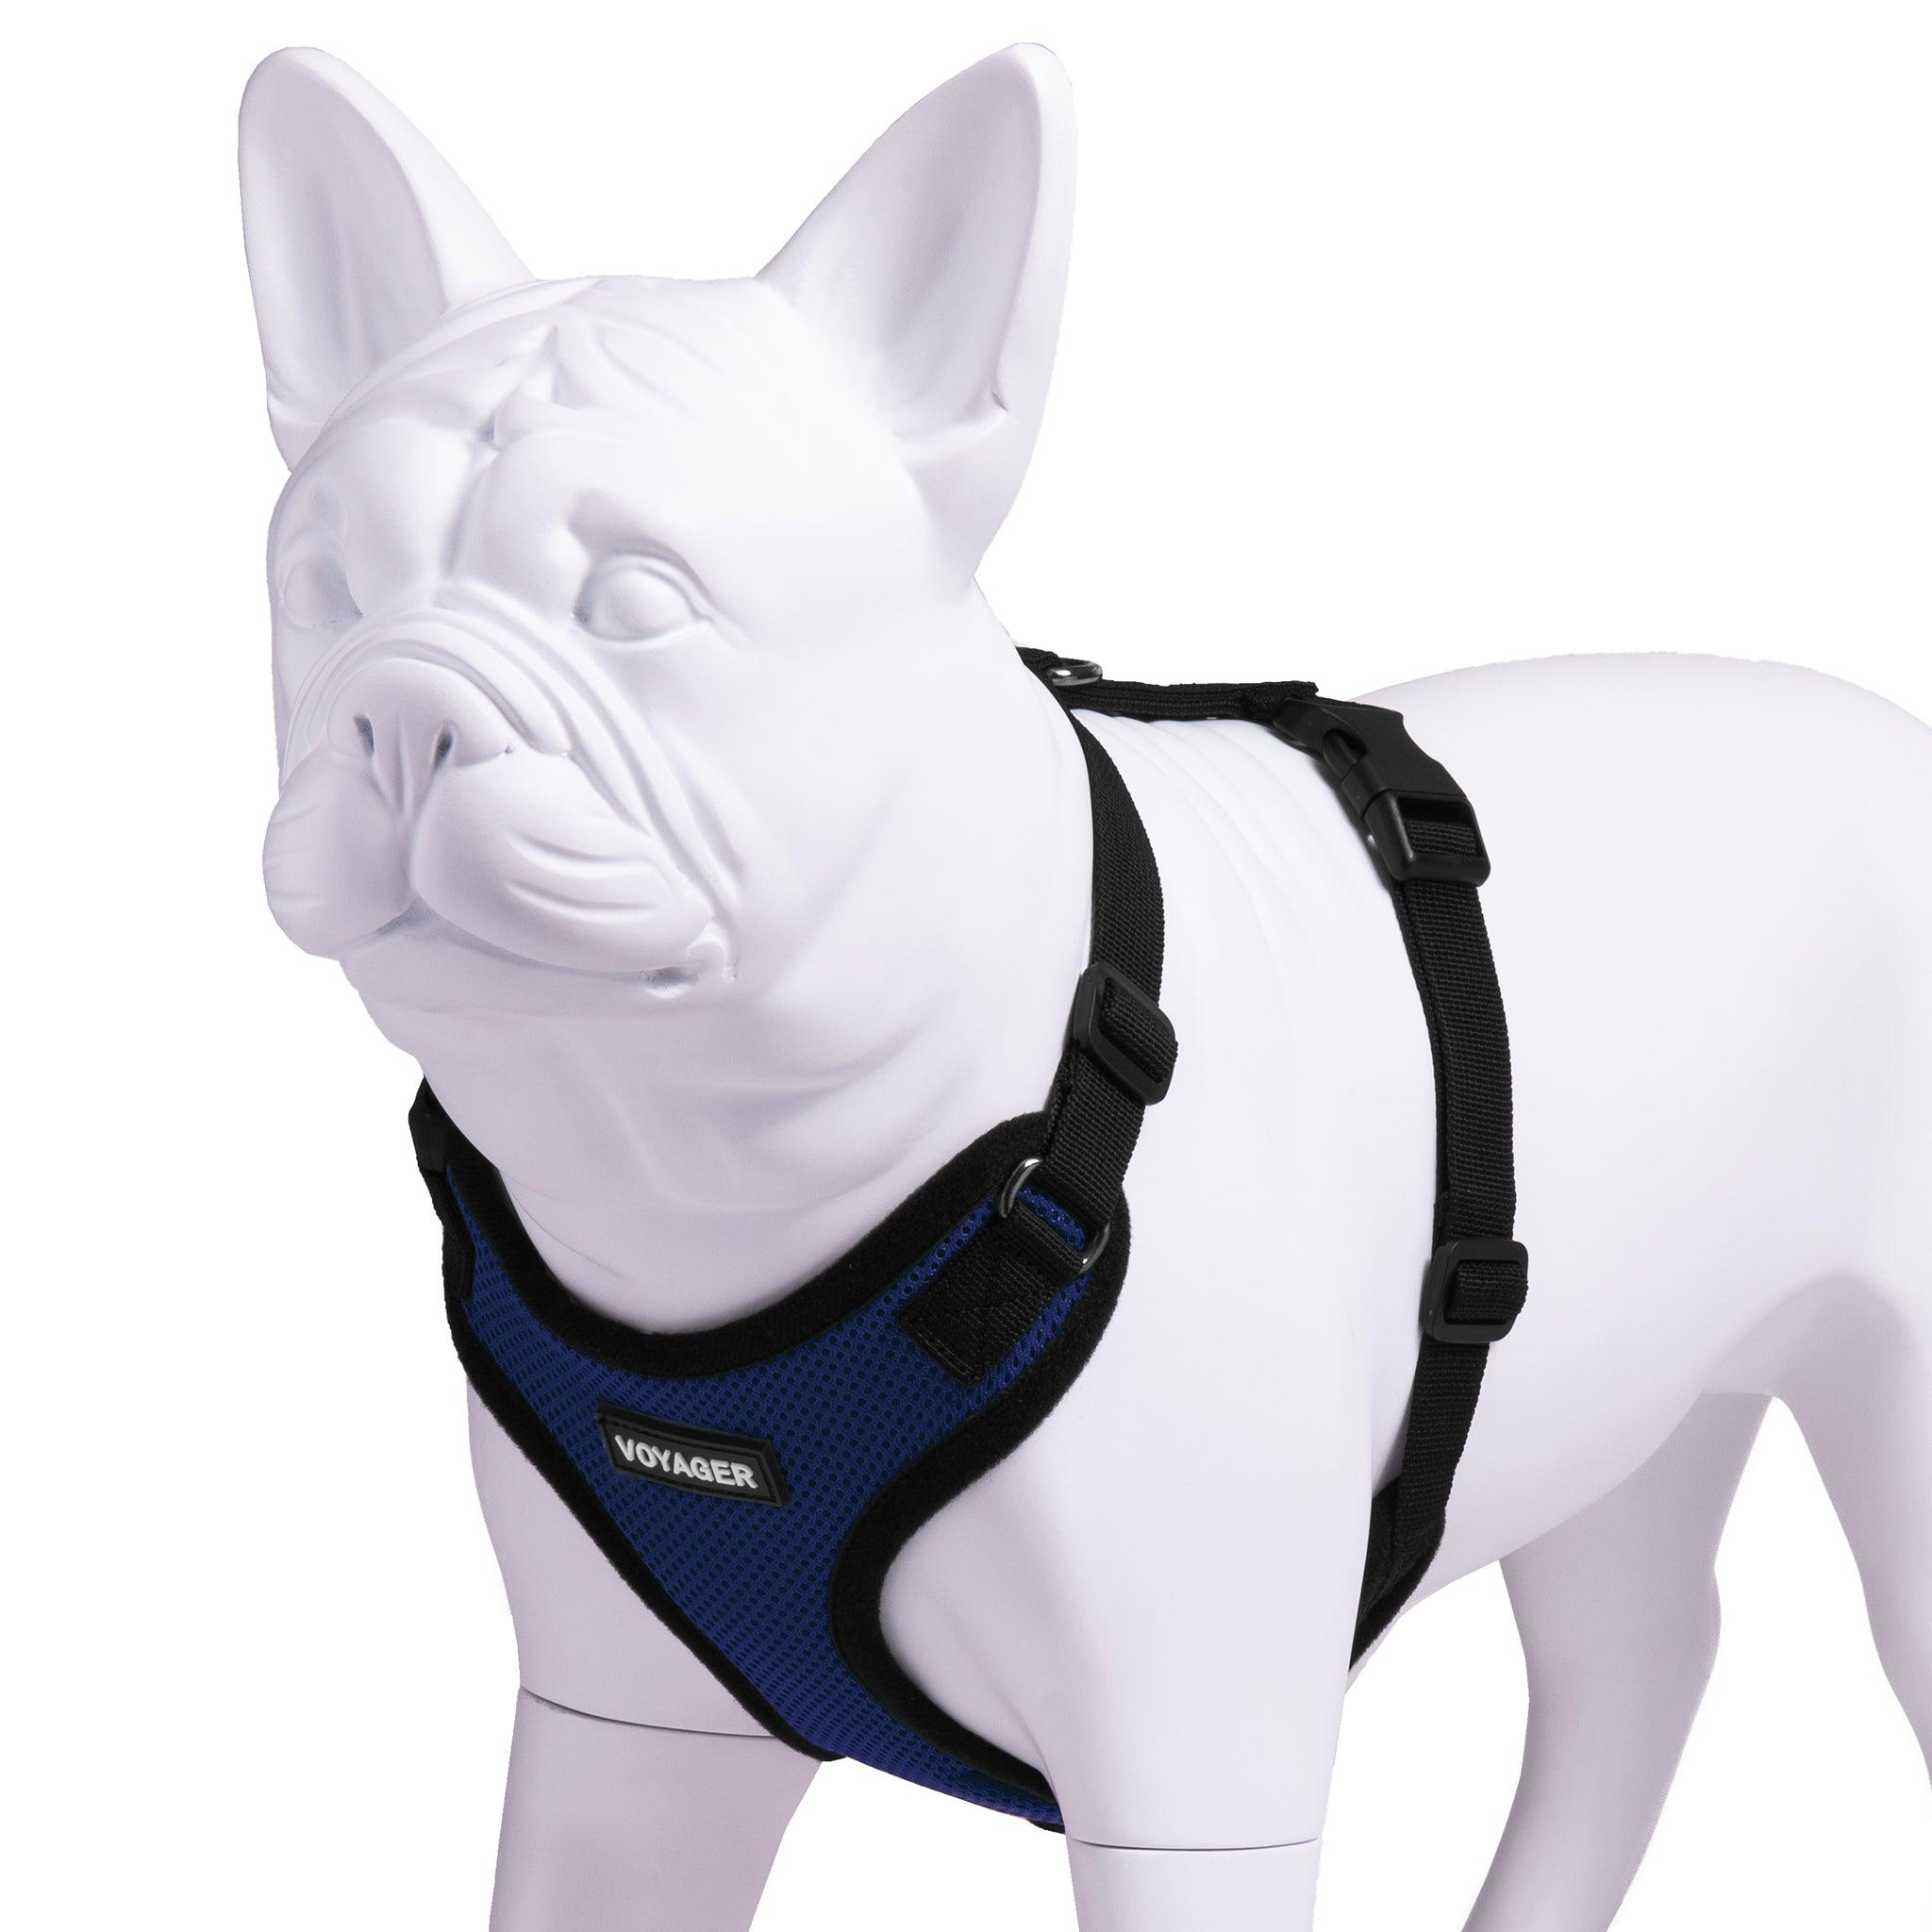 VOYAGER Step-In Lock Dog Harness in Royal Blue with Black Trim and Webbing - Expanded